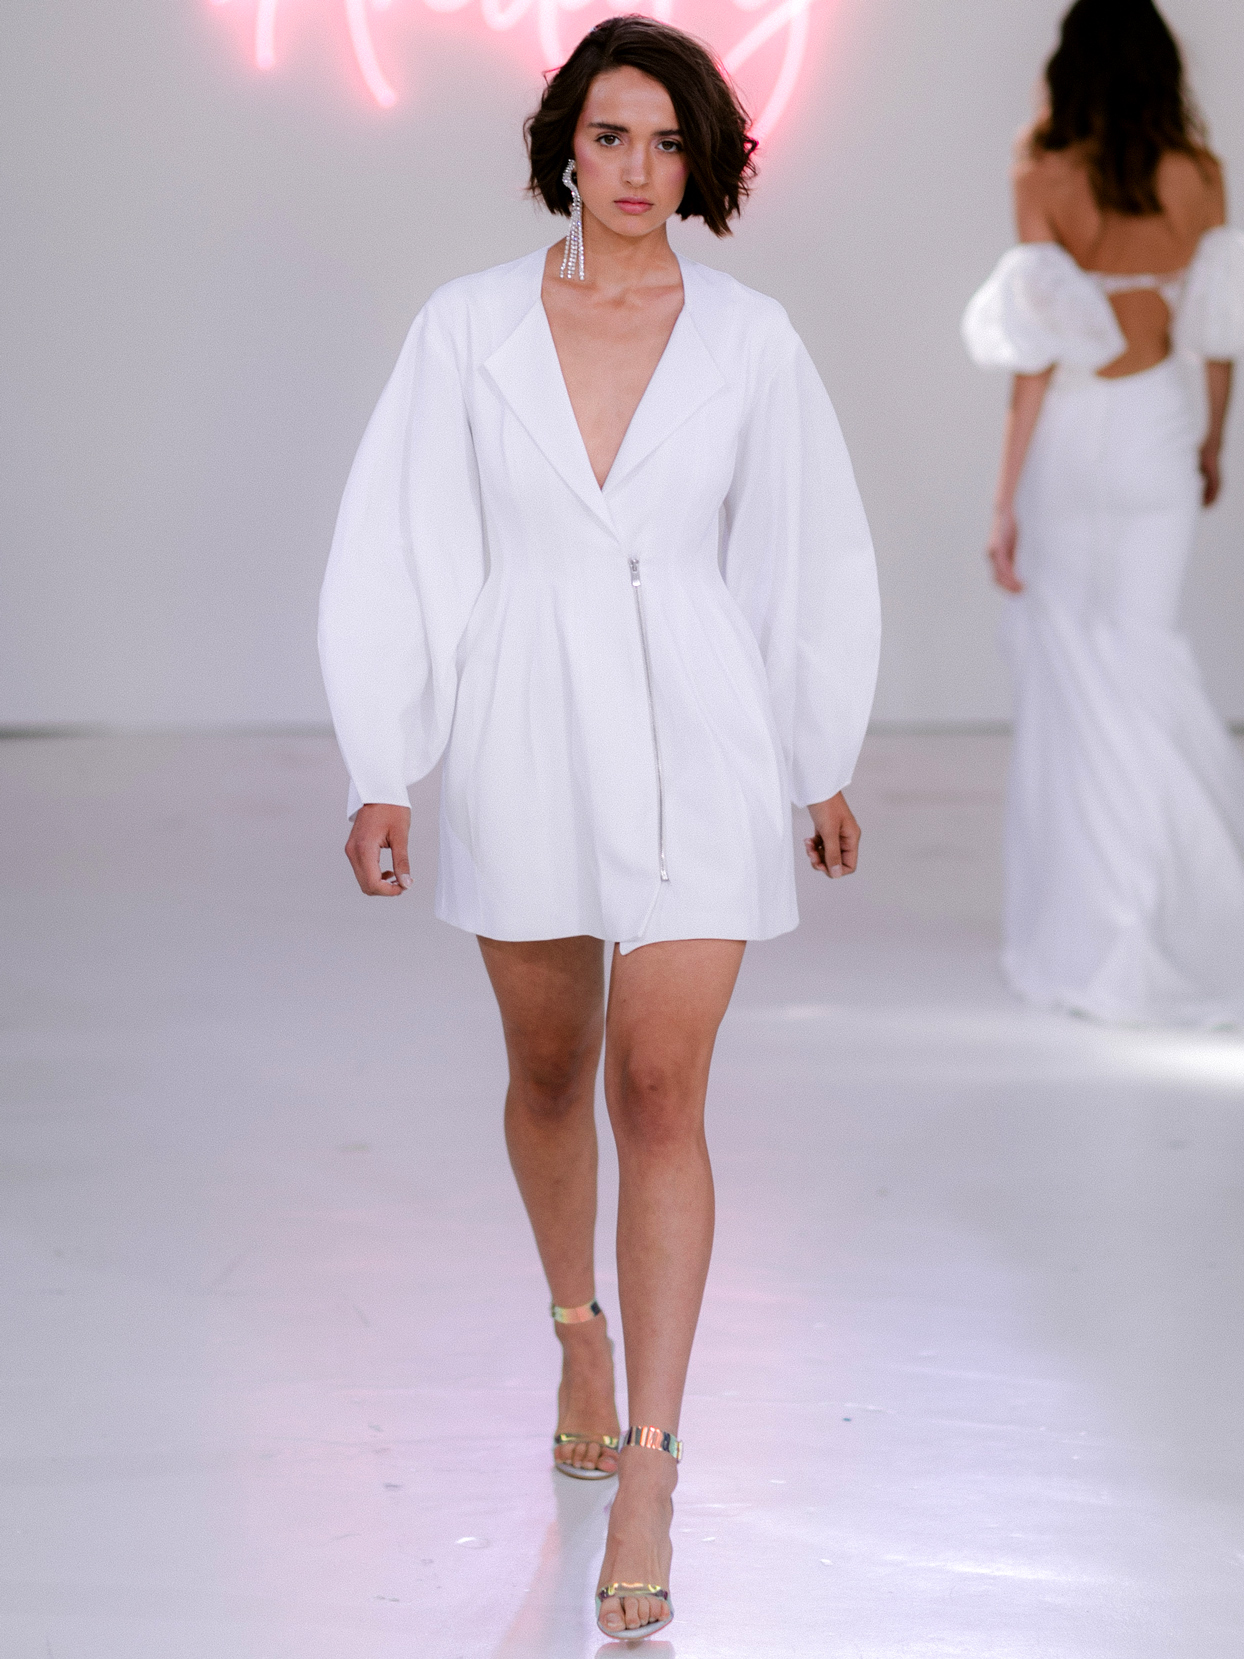 Rime Arodaky X The Mews Bridal long sleeve v-neck mini wedding dress fall 2020